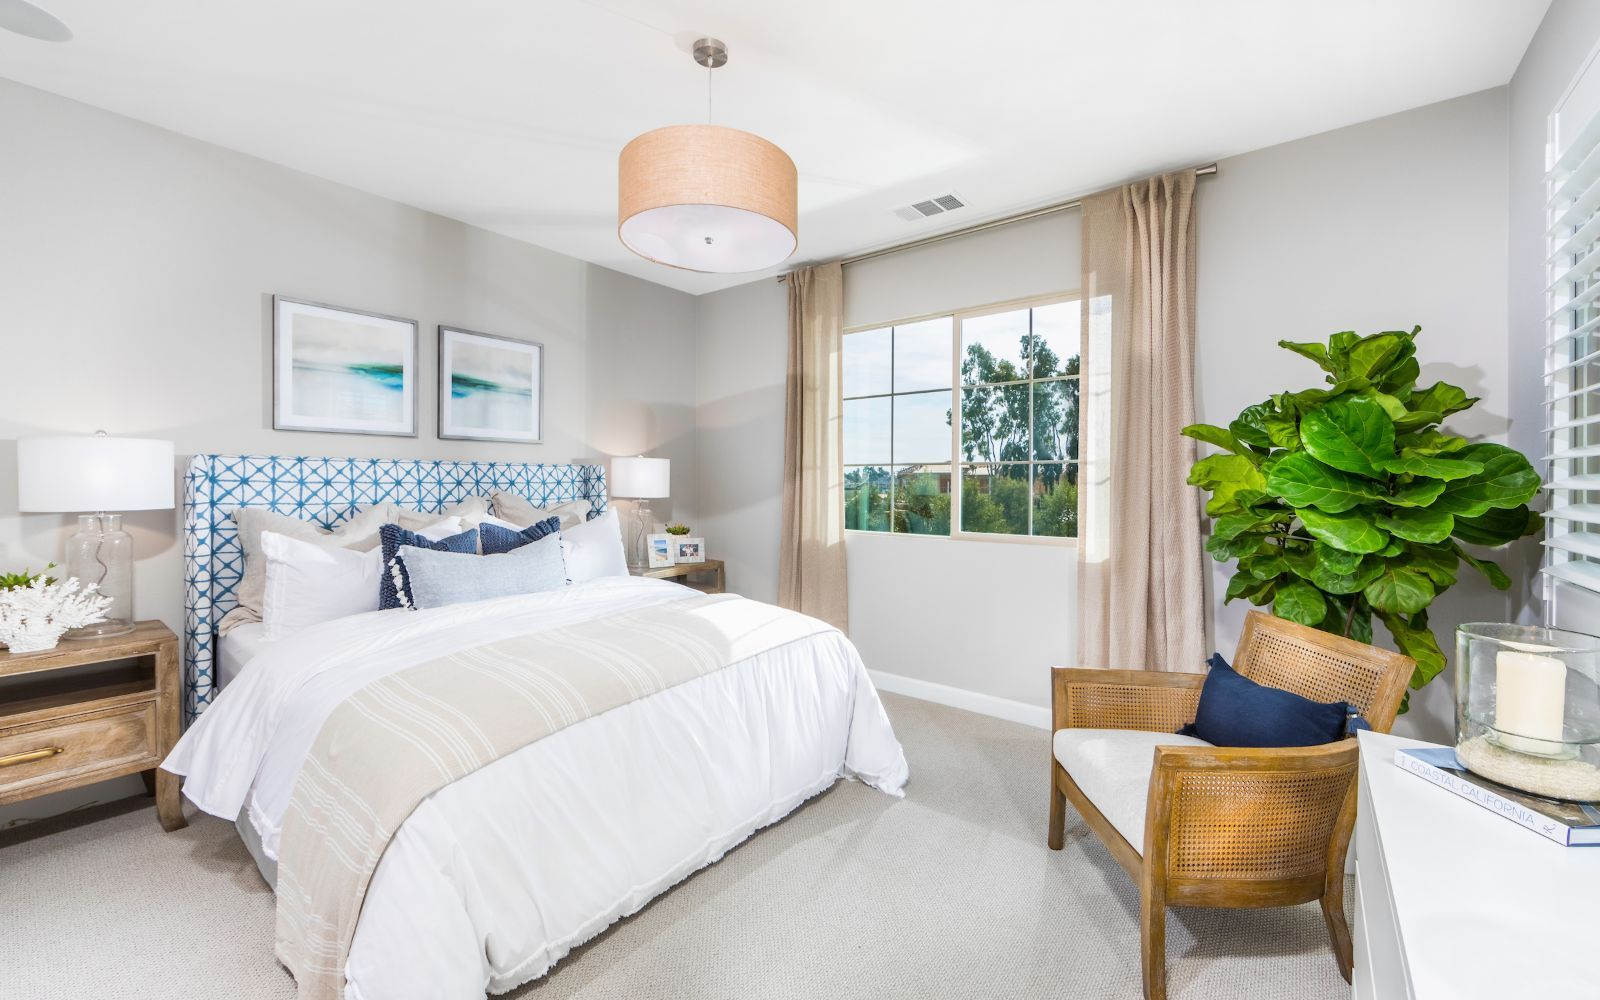 Bedroom featured in the Towns Plan 6 By Brookfield Residential in Orange County, CA